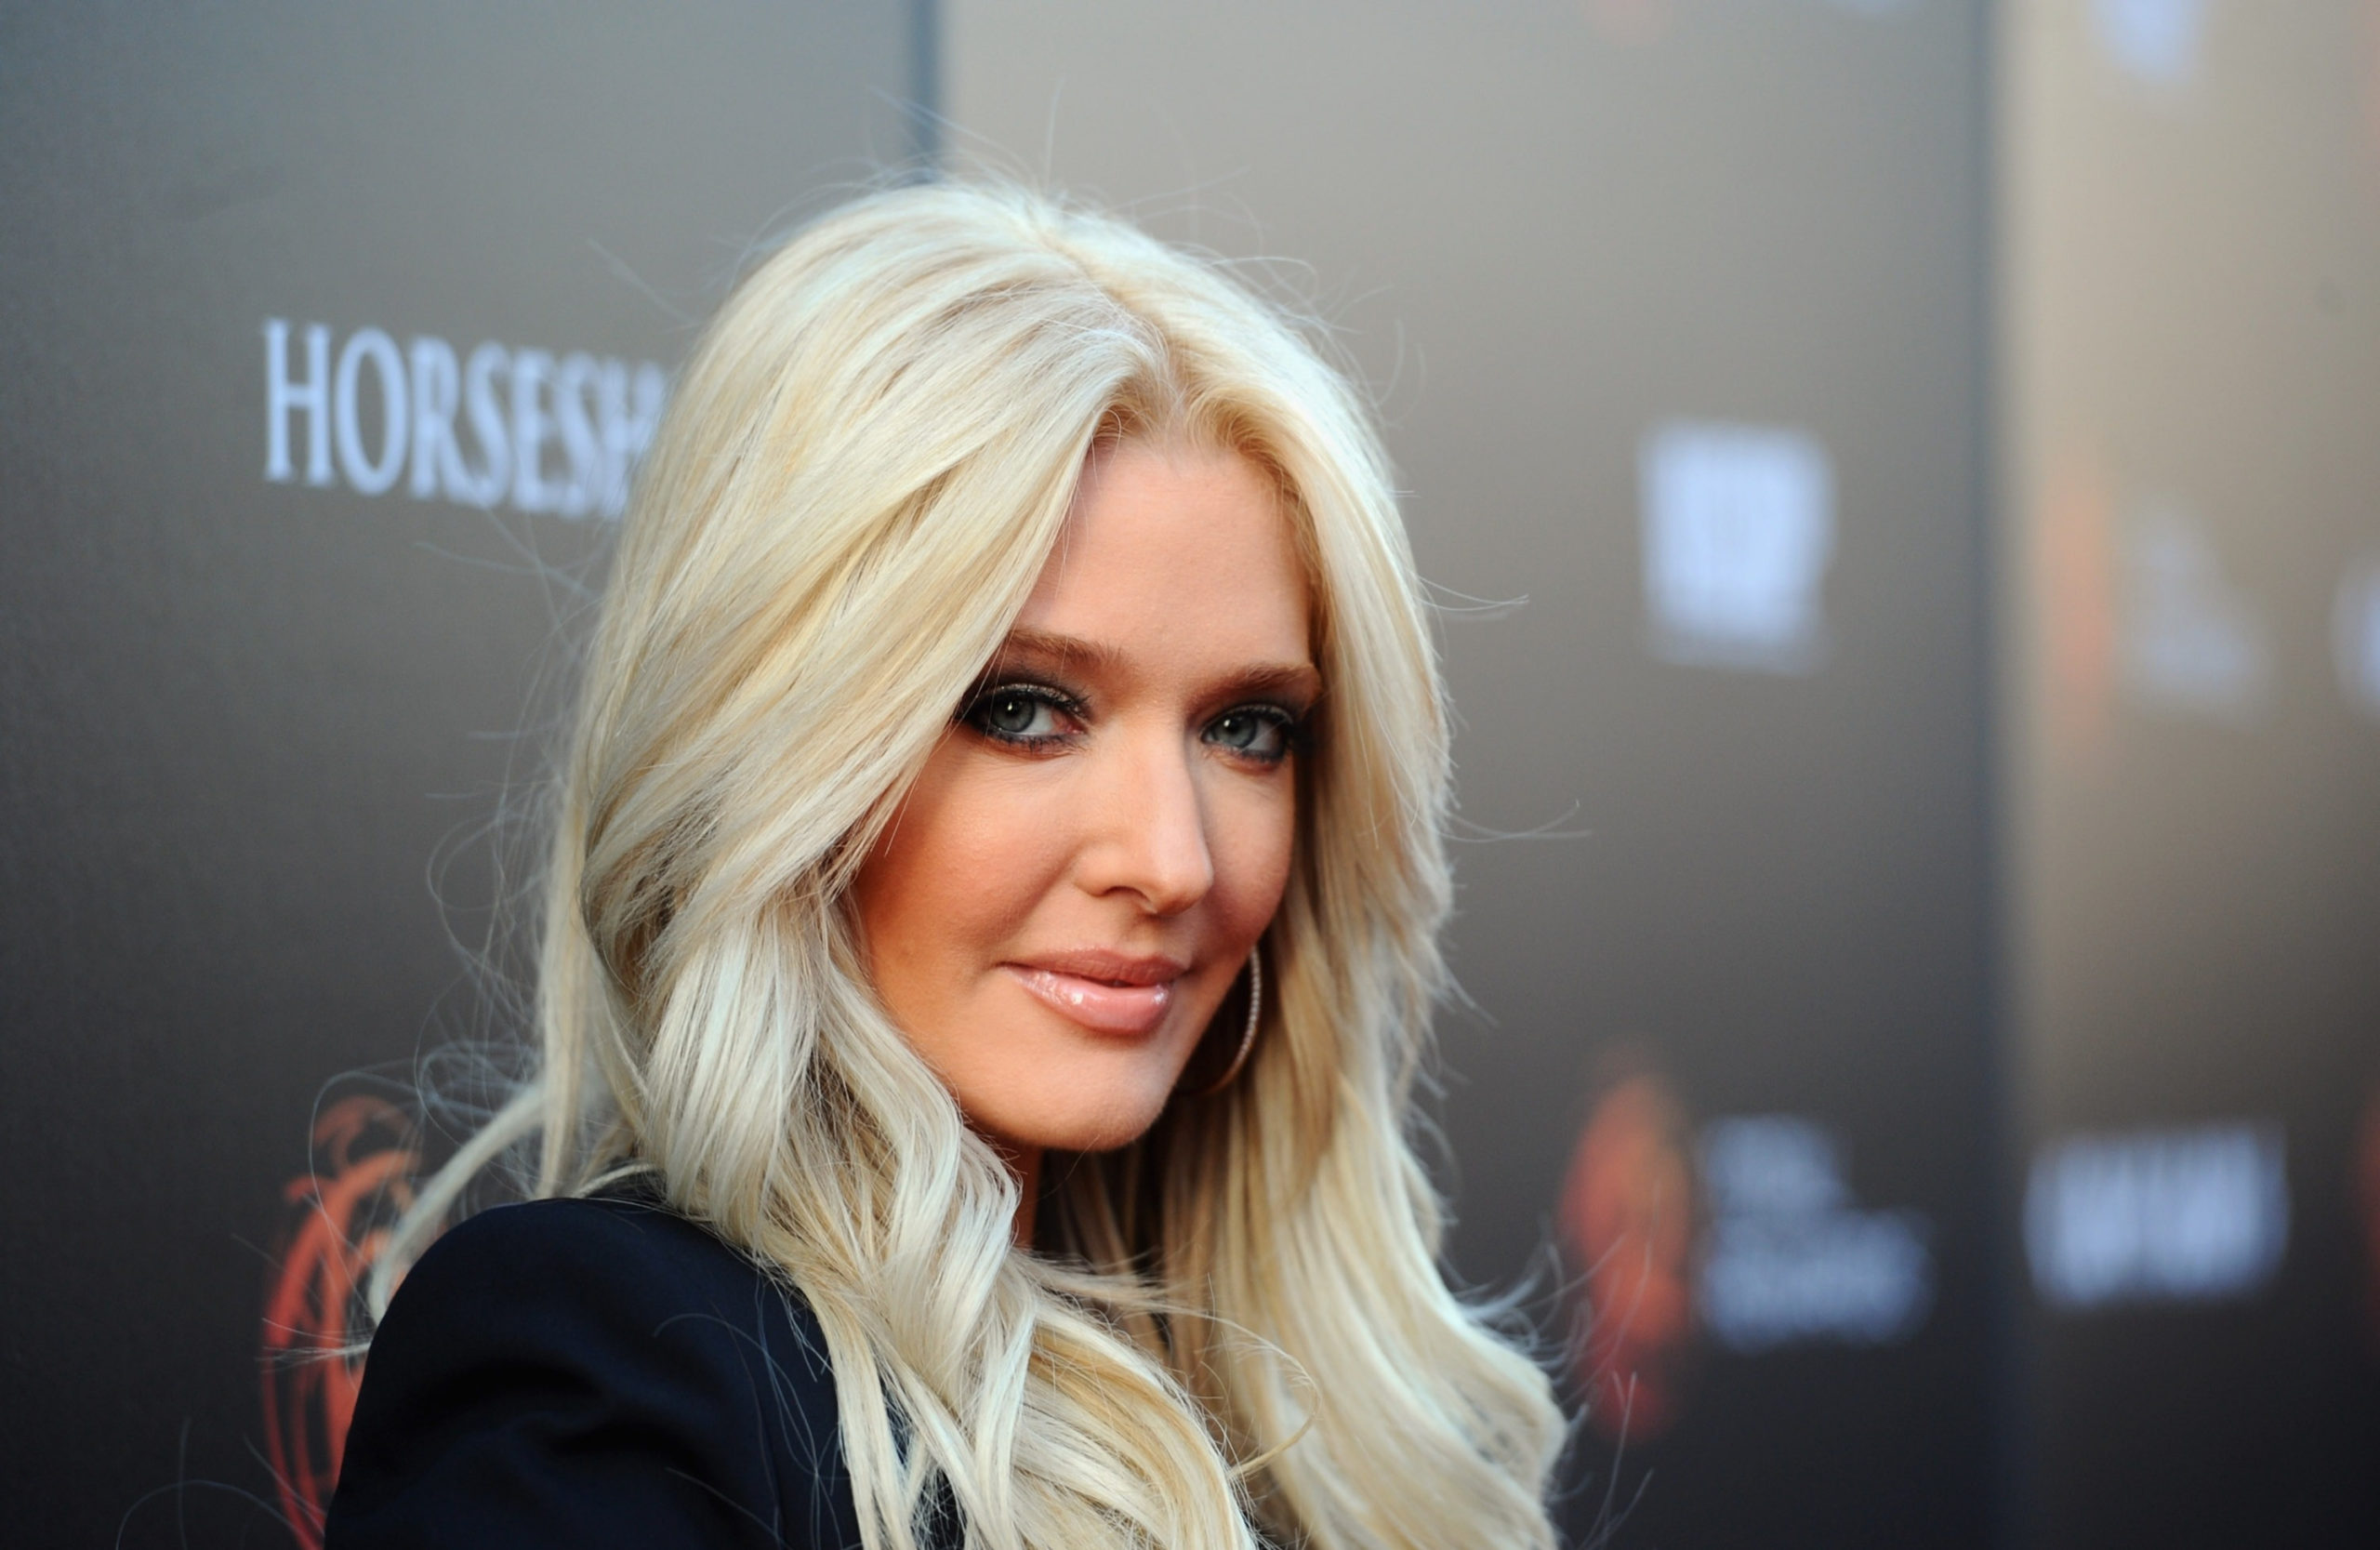 The Lawyer of Erika Jayne Spoke to a Judge for Girardi's Fraud Case